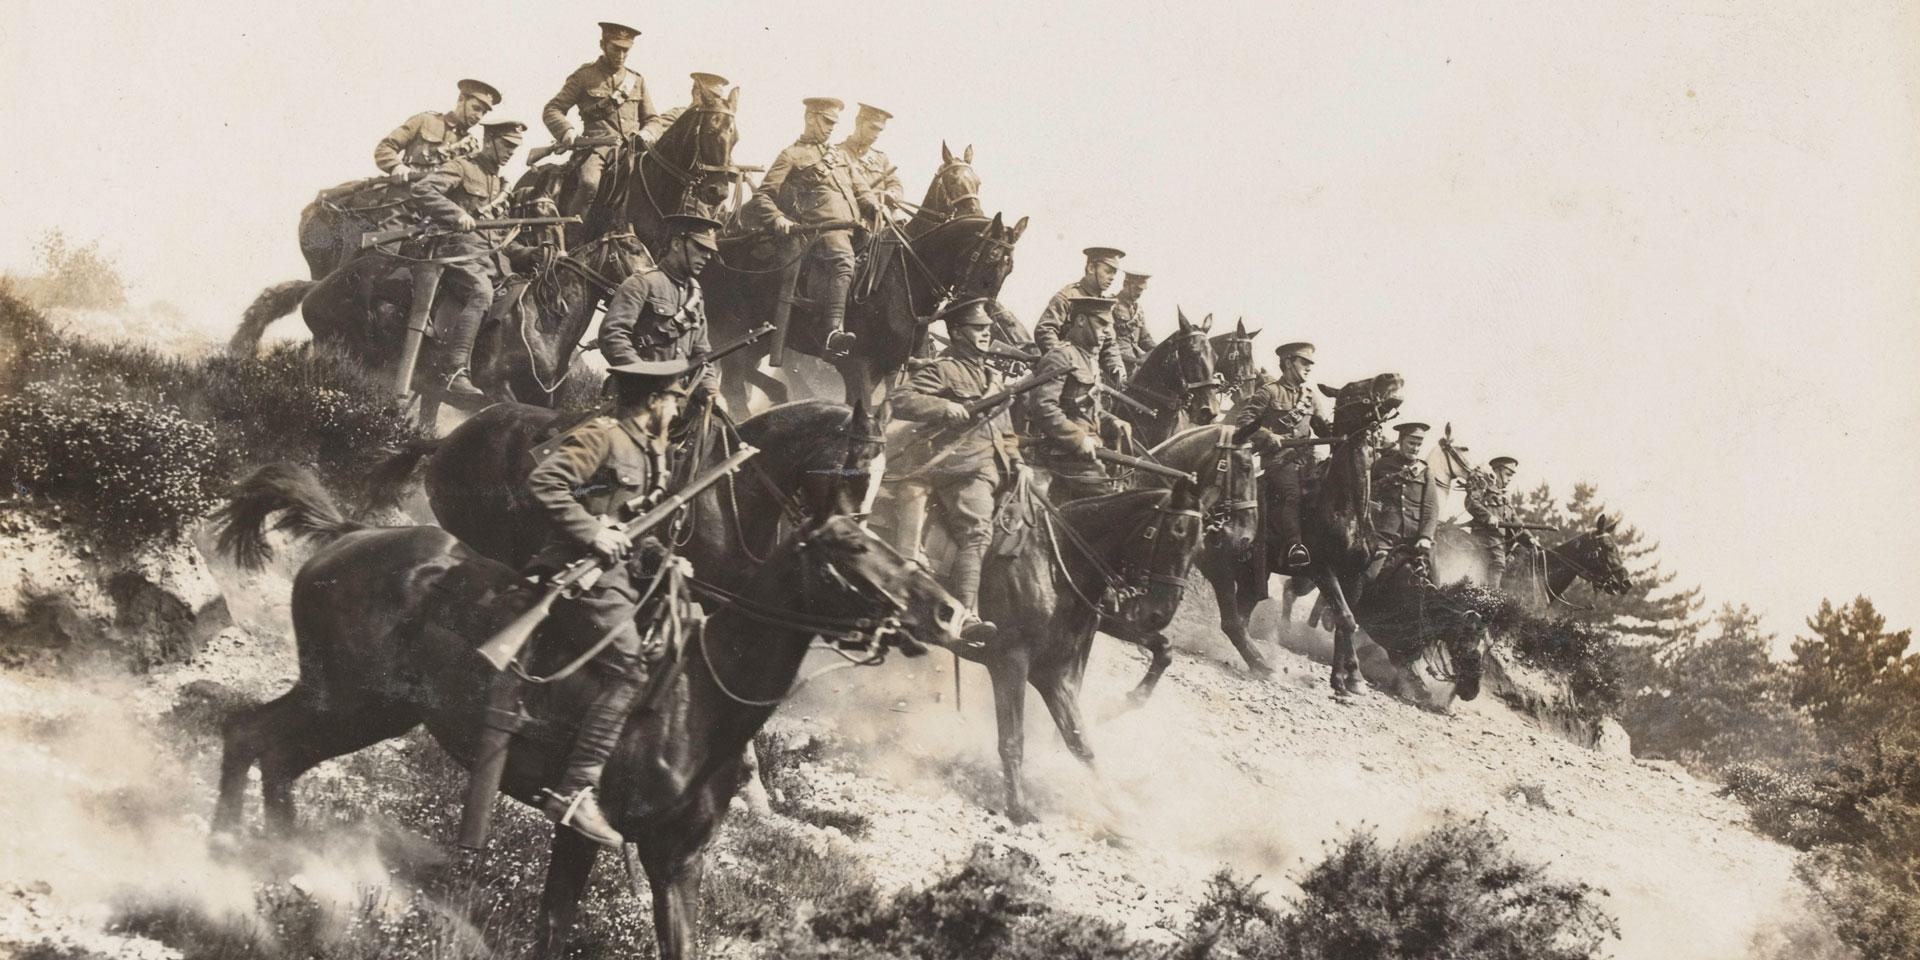 1st Reserve Regiment of Cavalry in training, 1914